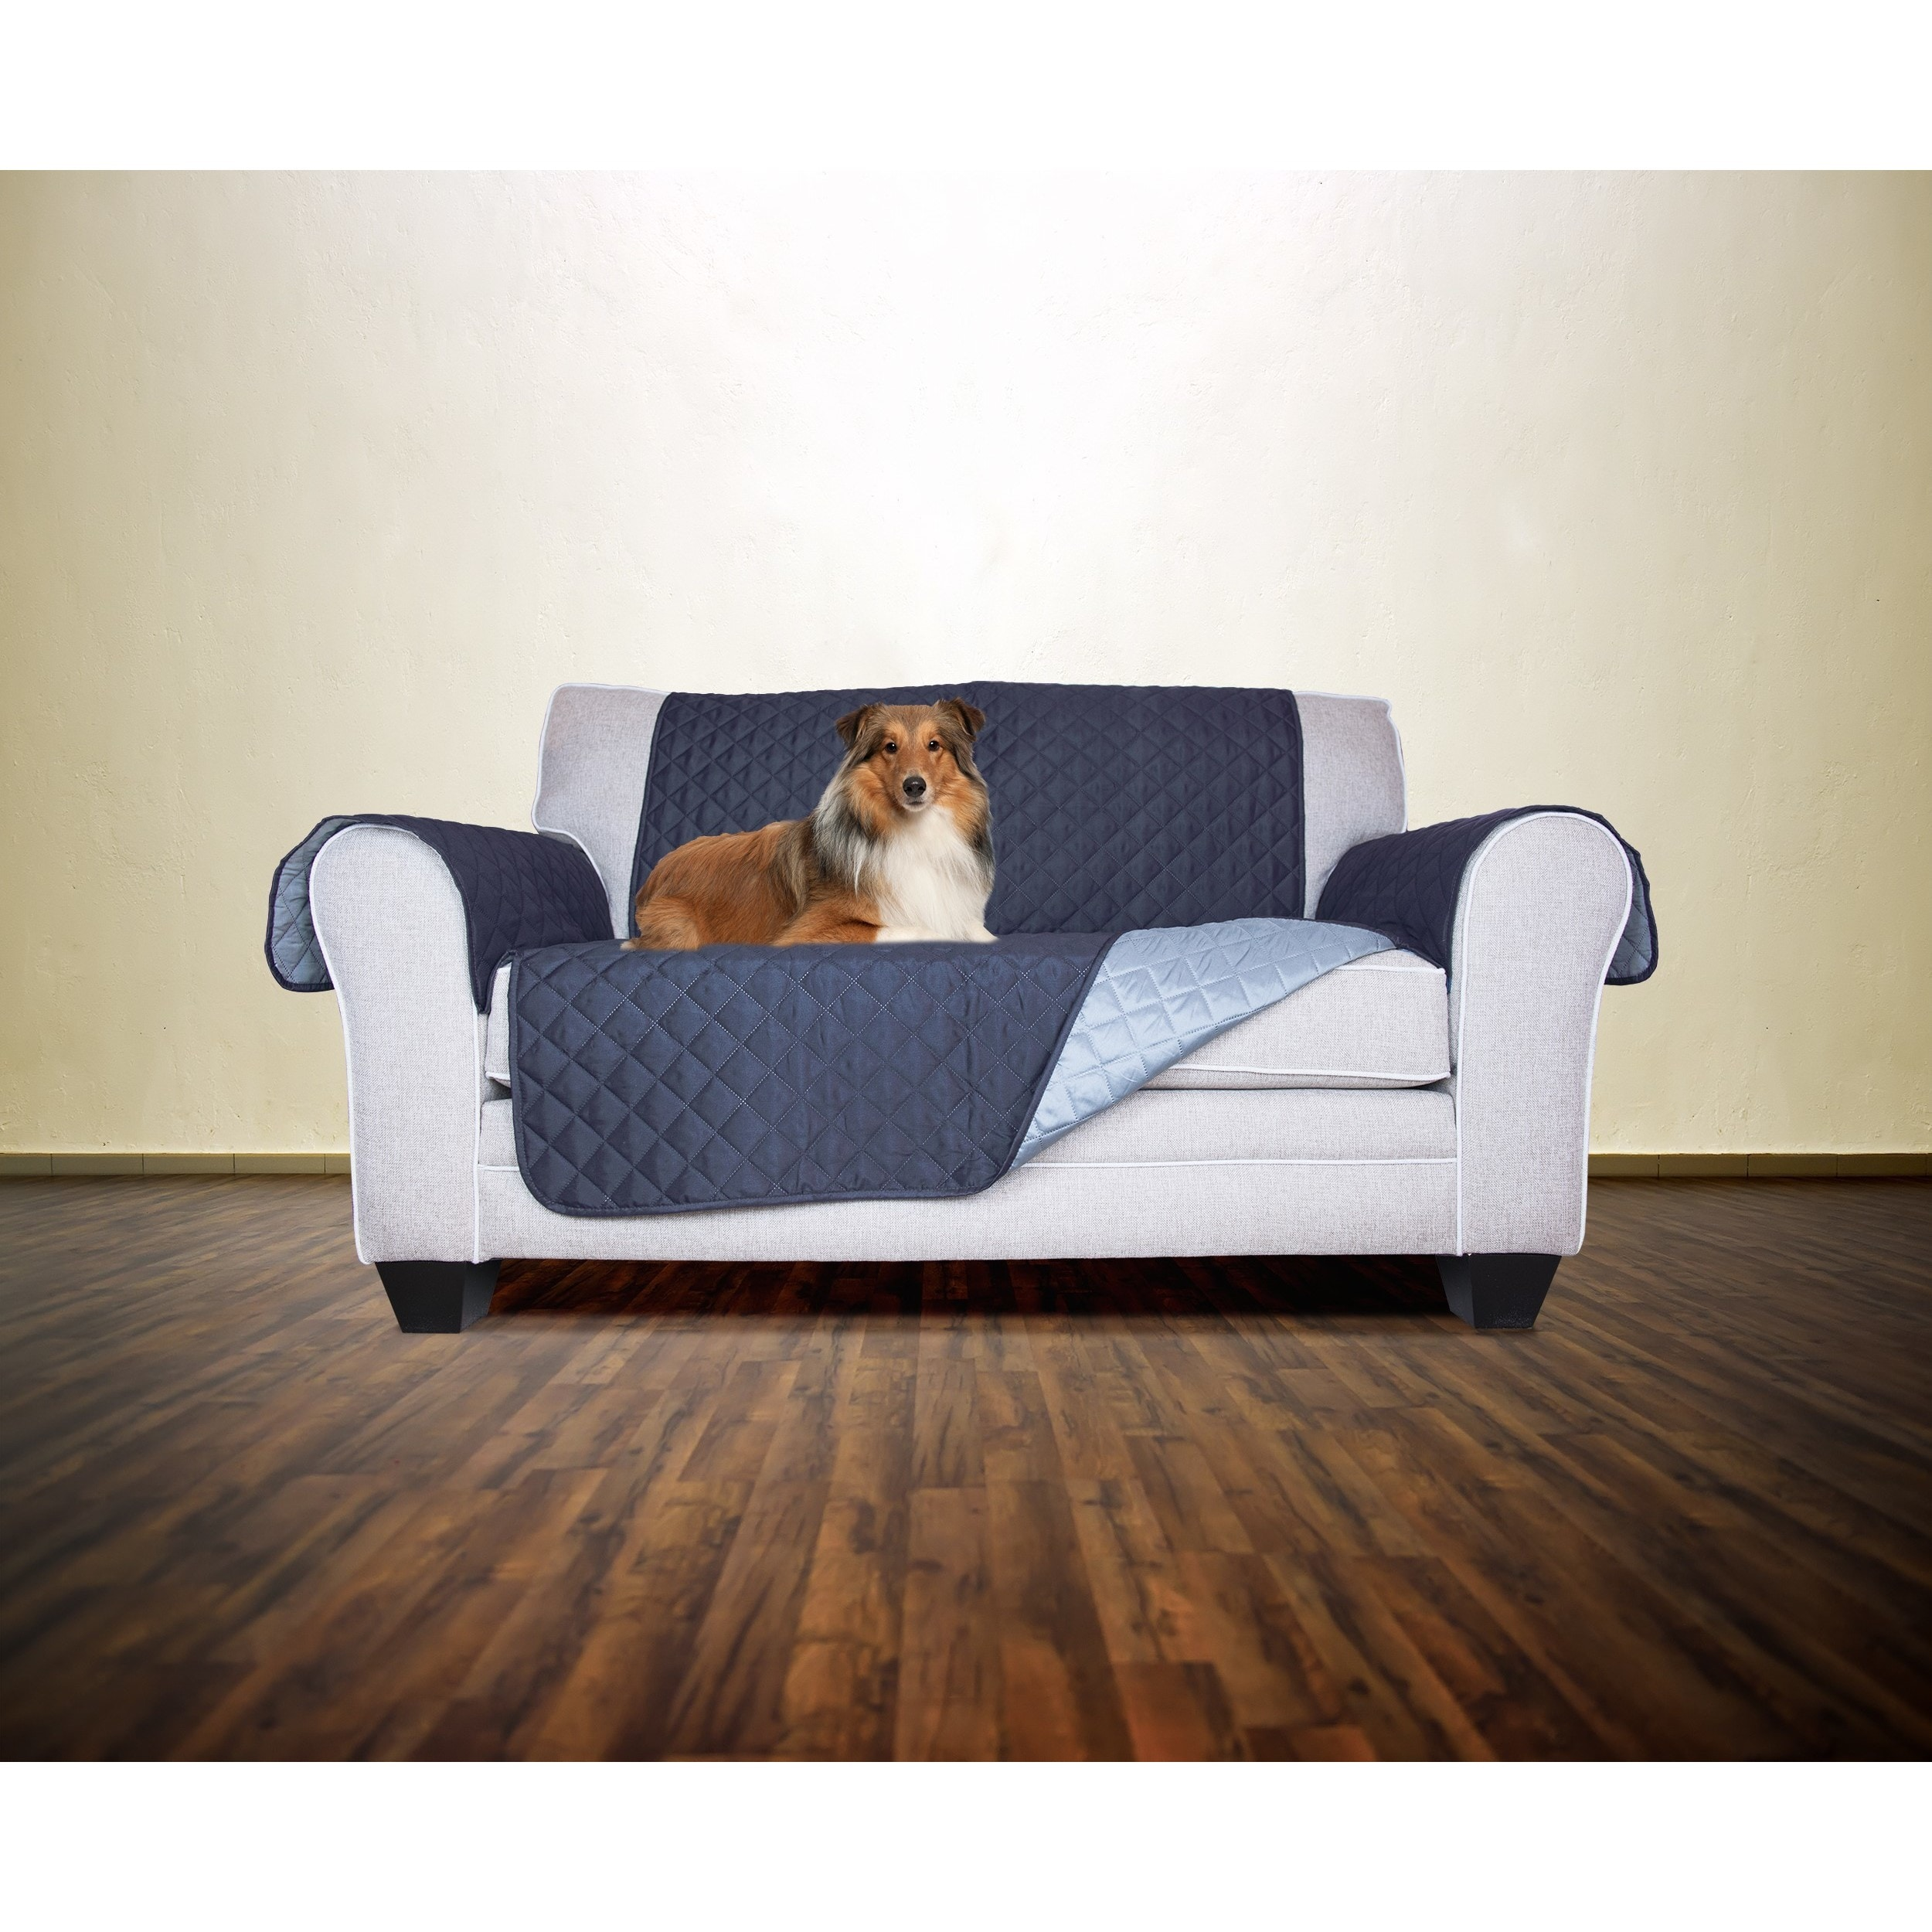 Furhaven Reversible Water Resistant Furniture Protector On Free Shipping Orders Over 45 12272251